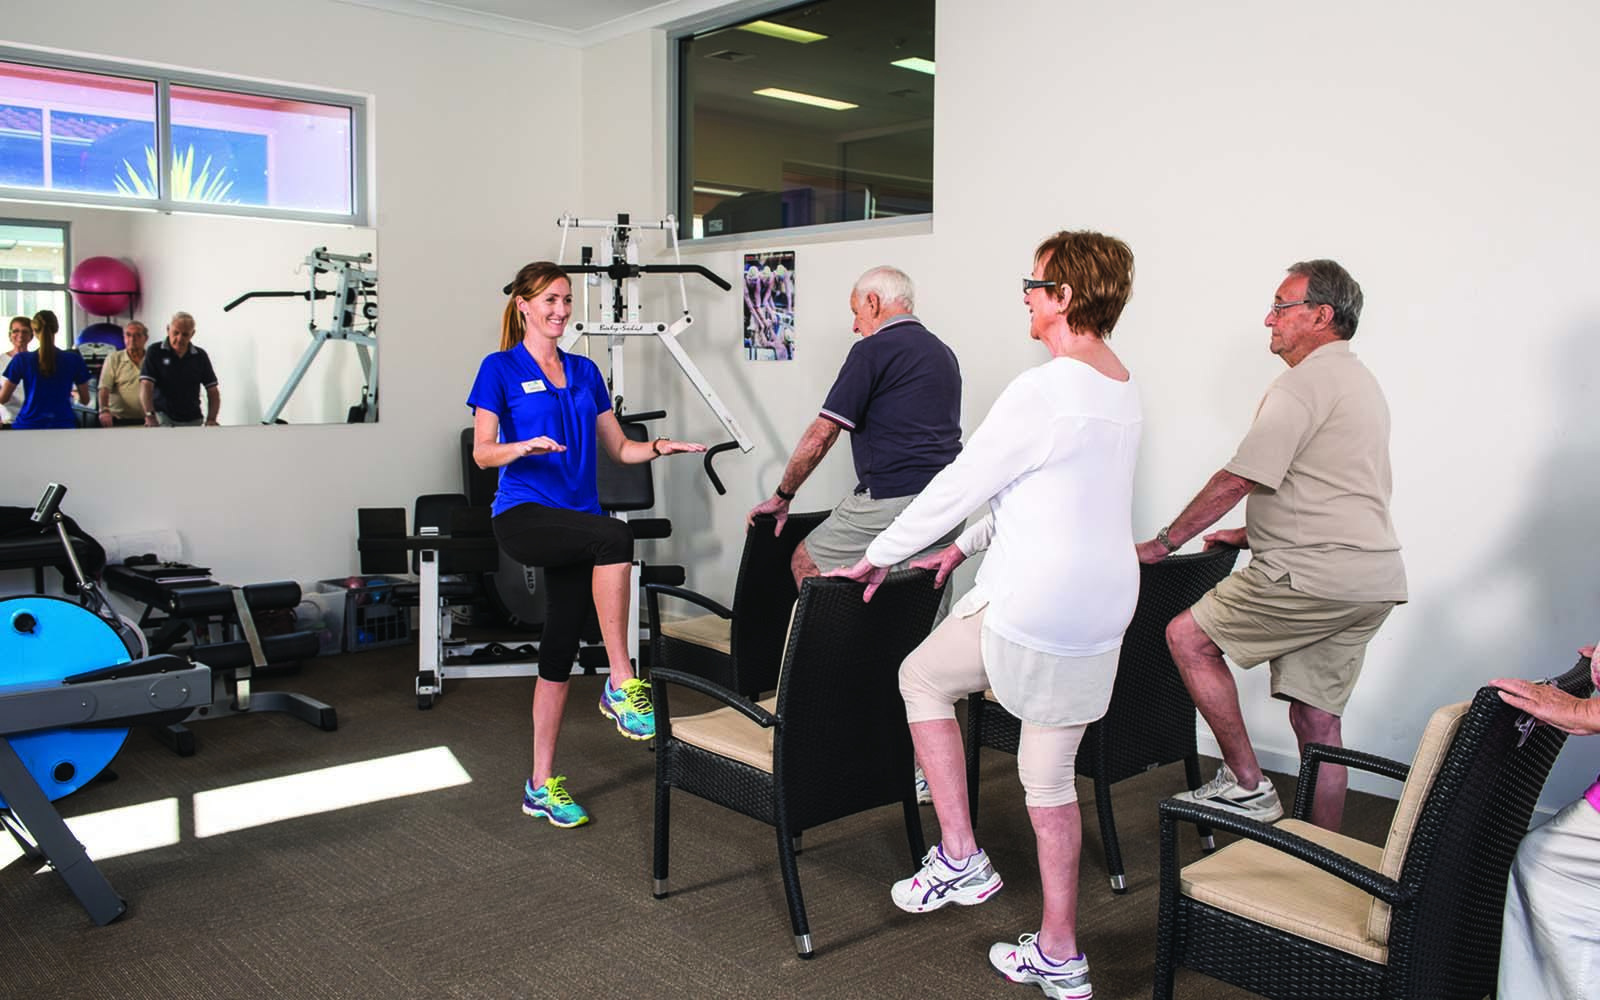 gym facilities for retired people